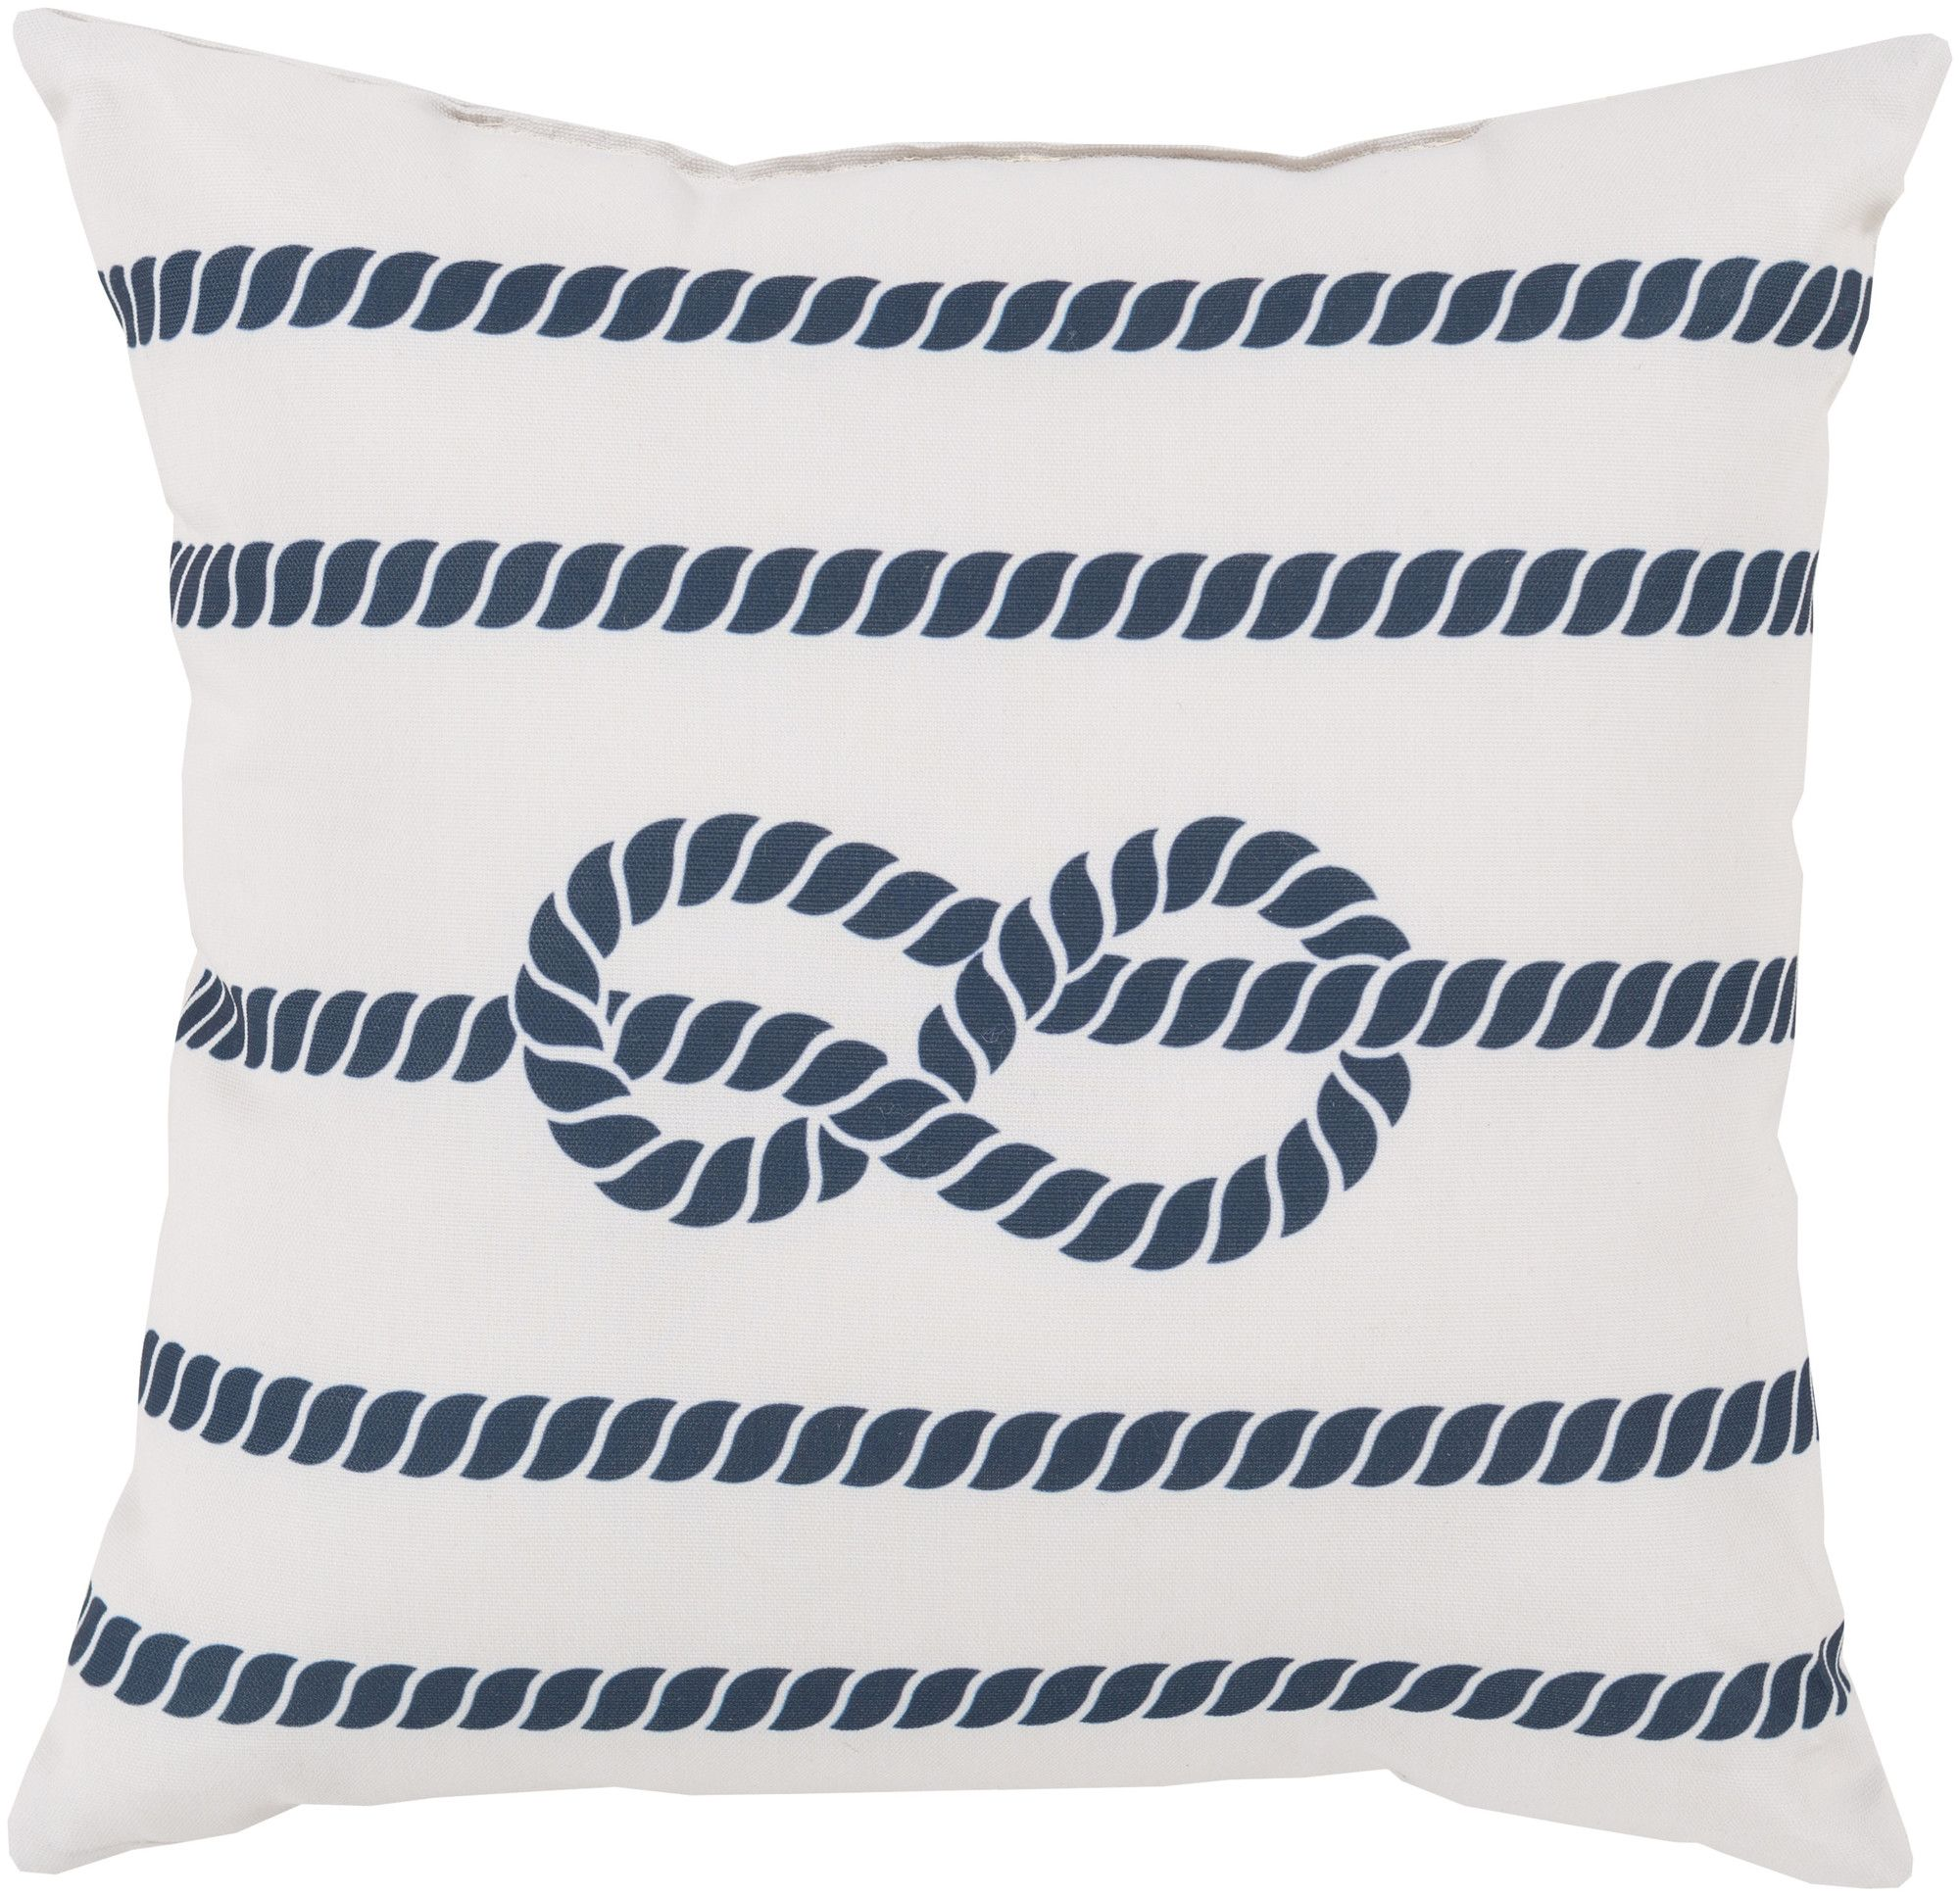 Odysseus Pillow In Ivory And Navy Rope Design The Beach Bungalow